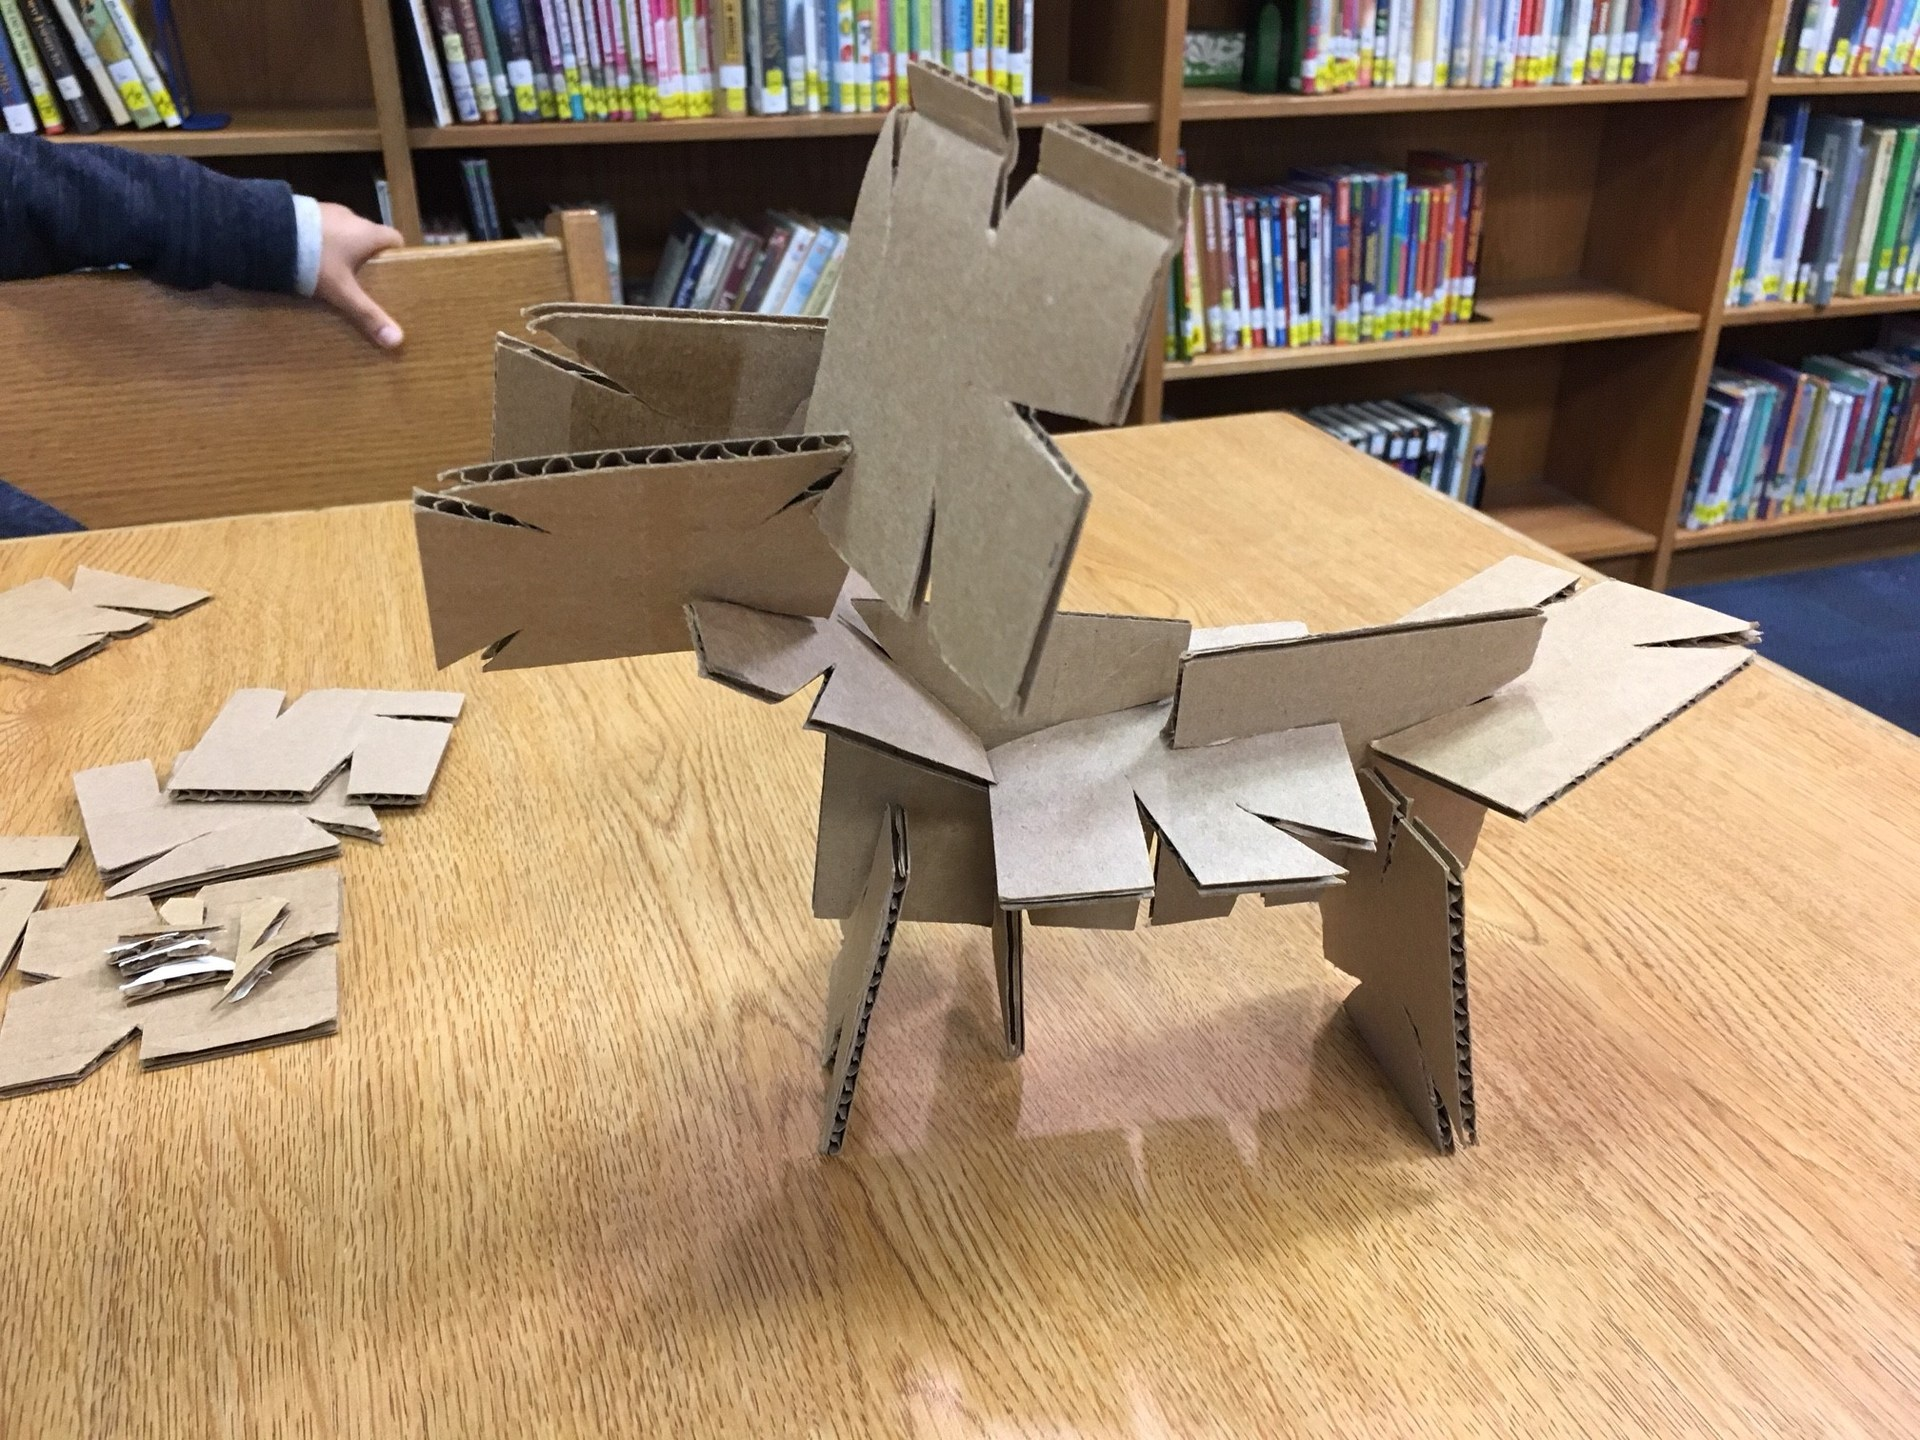 Makerspace Challenge - Creative Cardboard